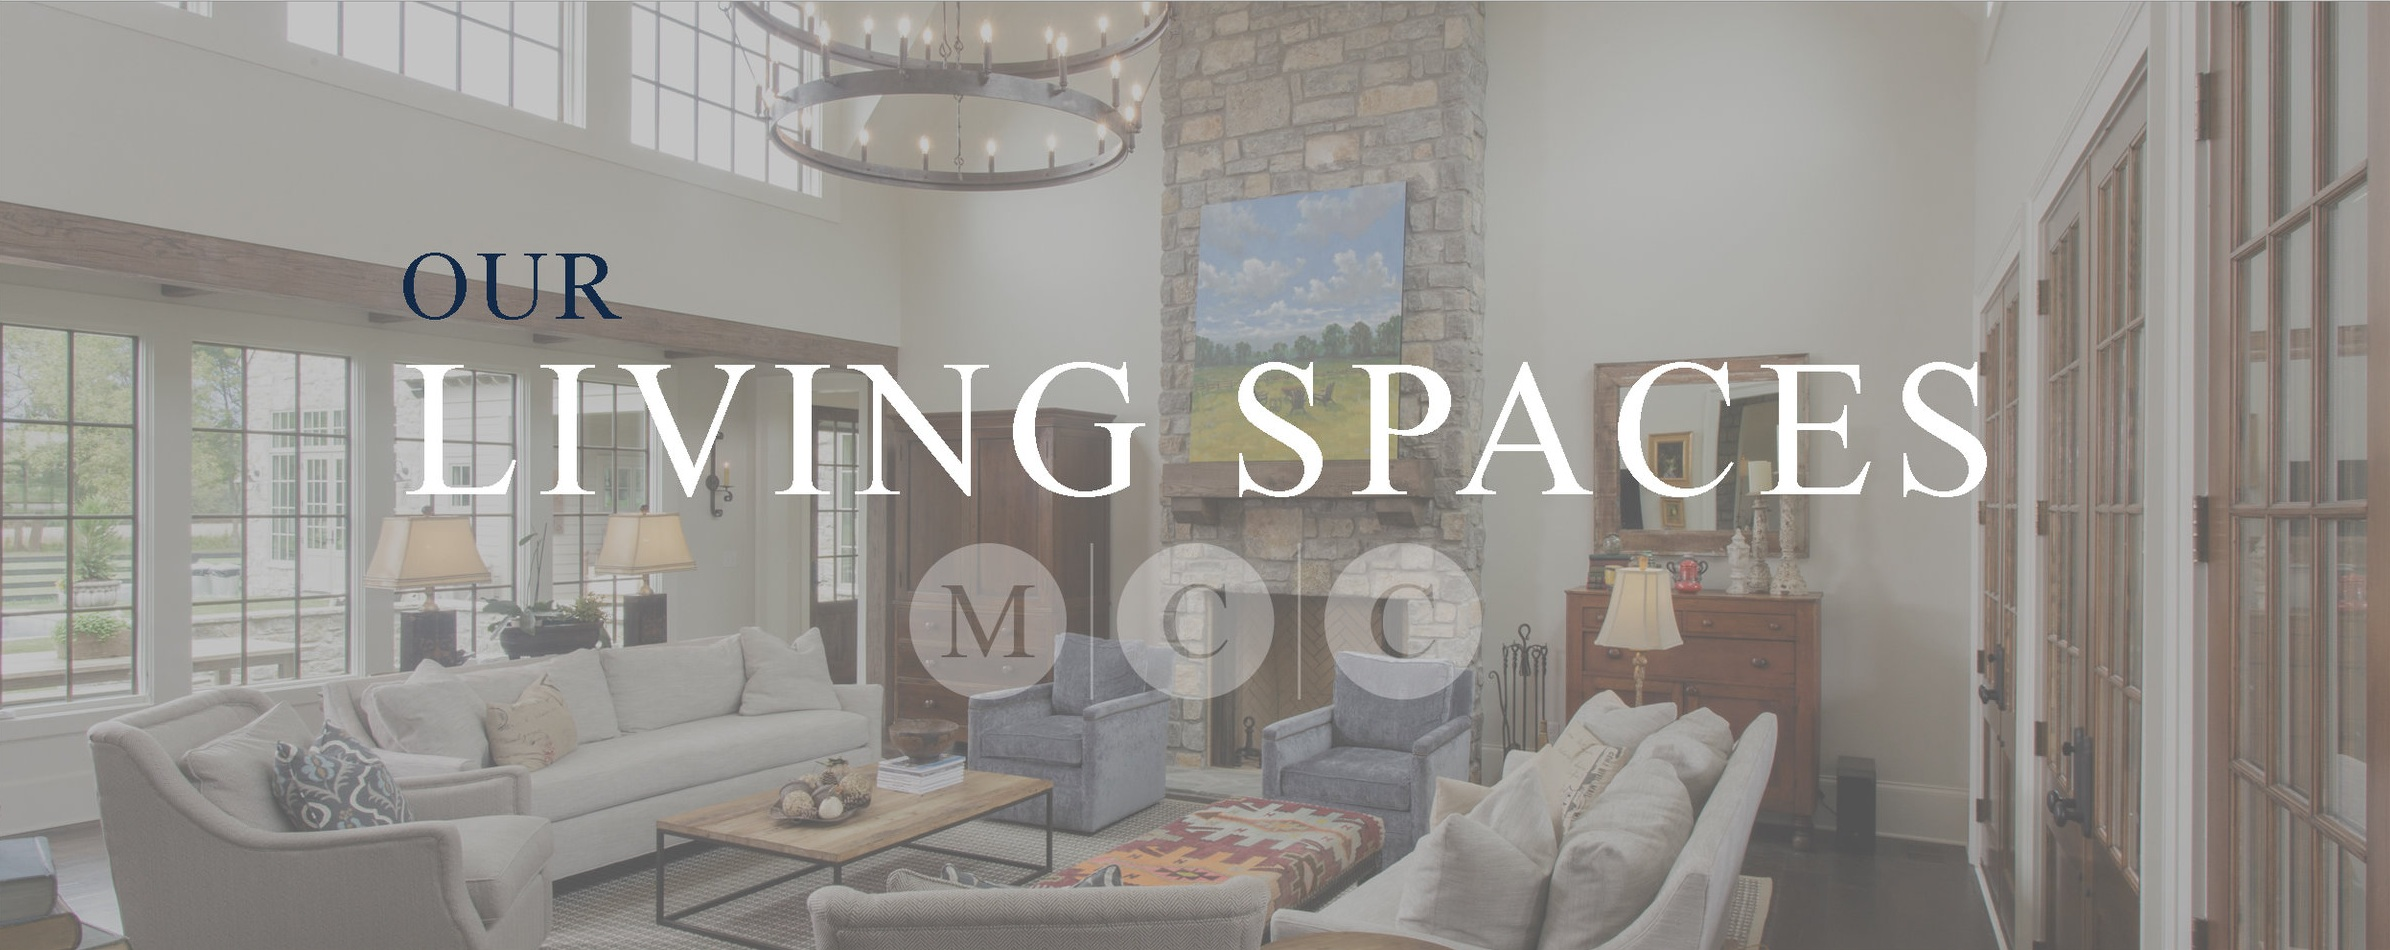 Our Living Spaces